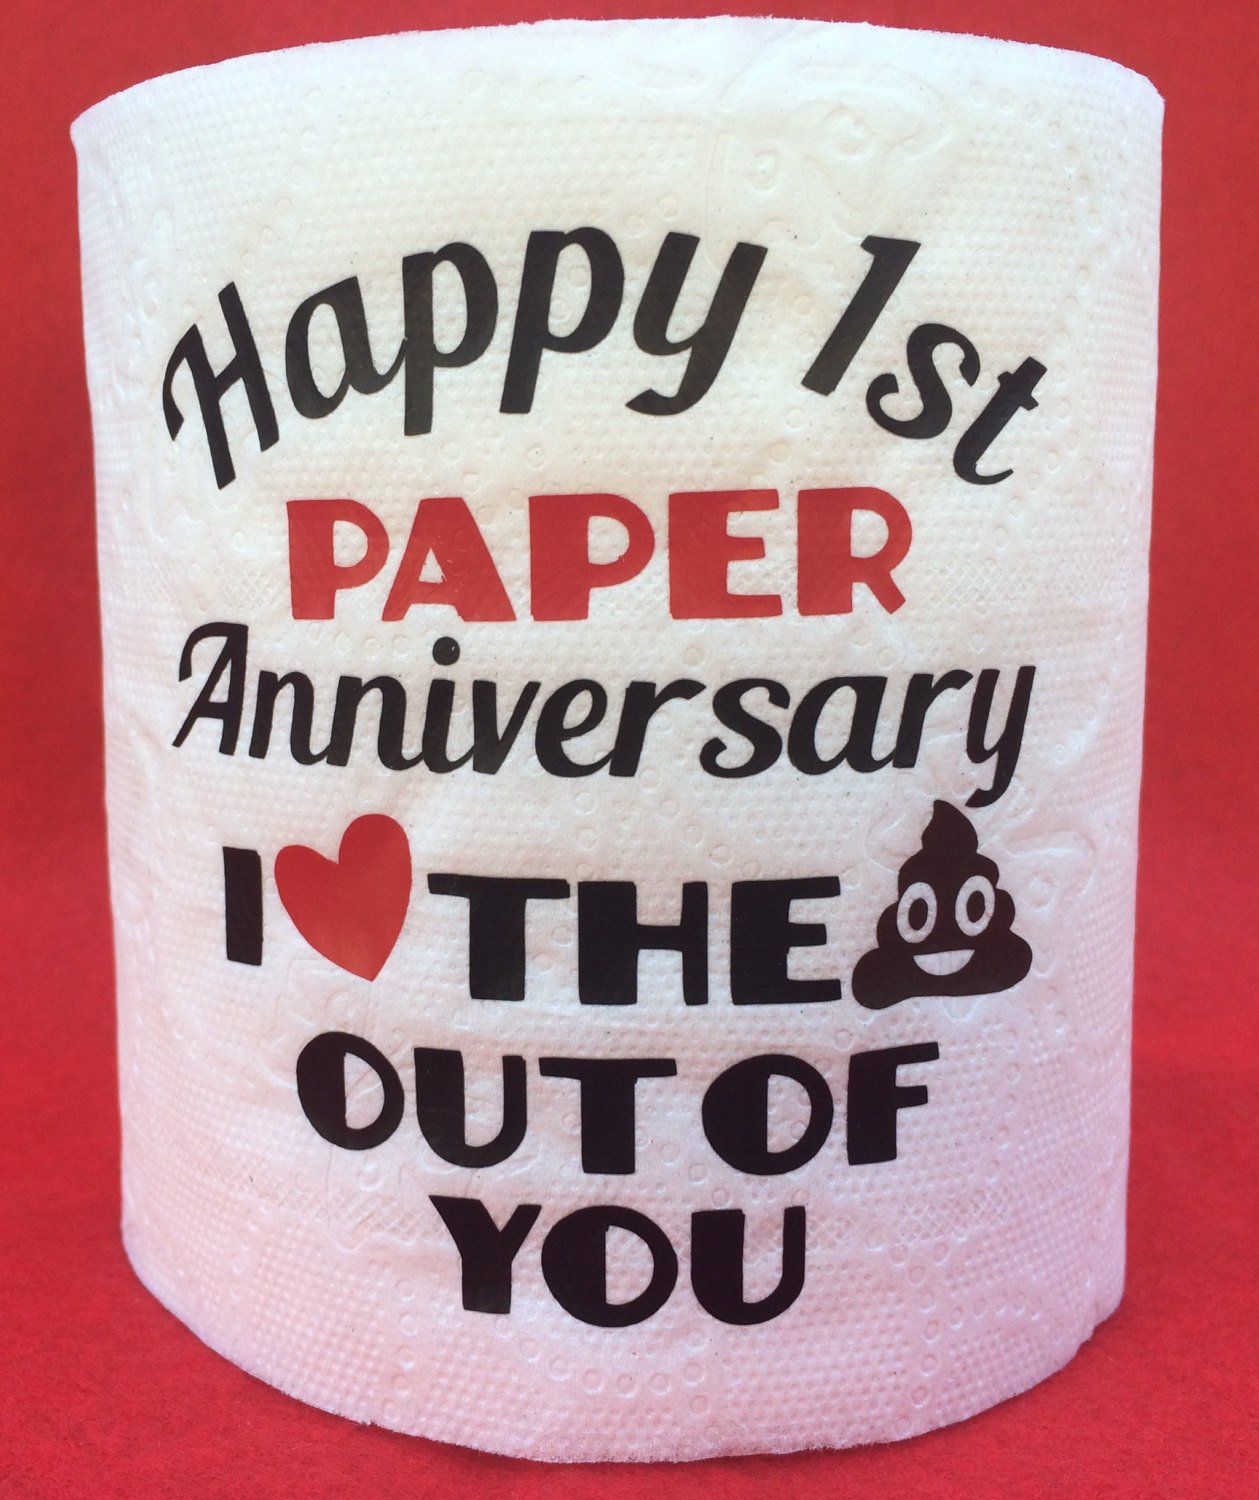 'Happy 1st Wedding Anniversary' Toilet Paper from Etsy